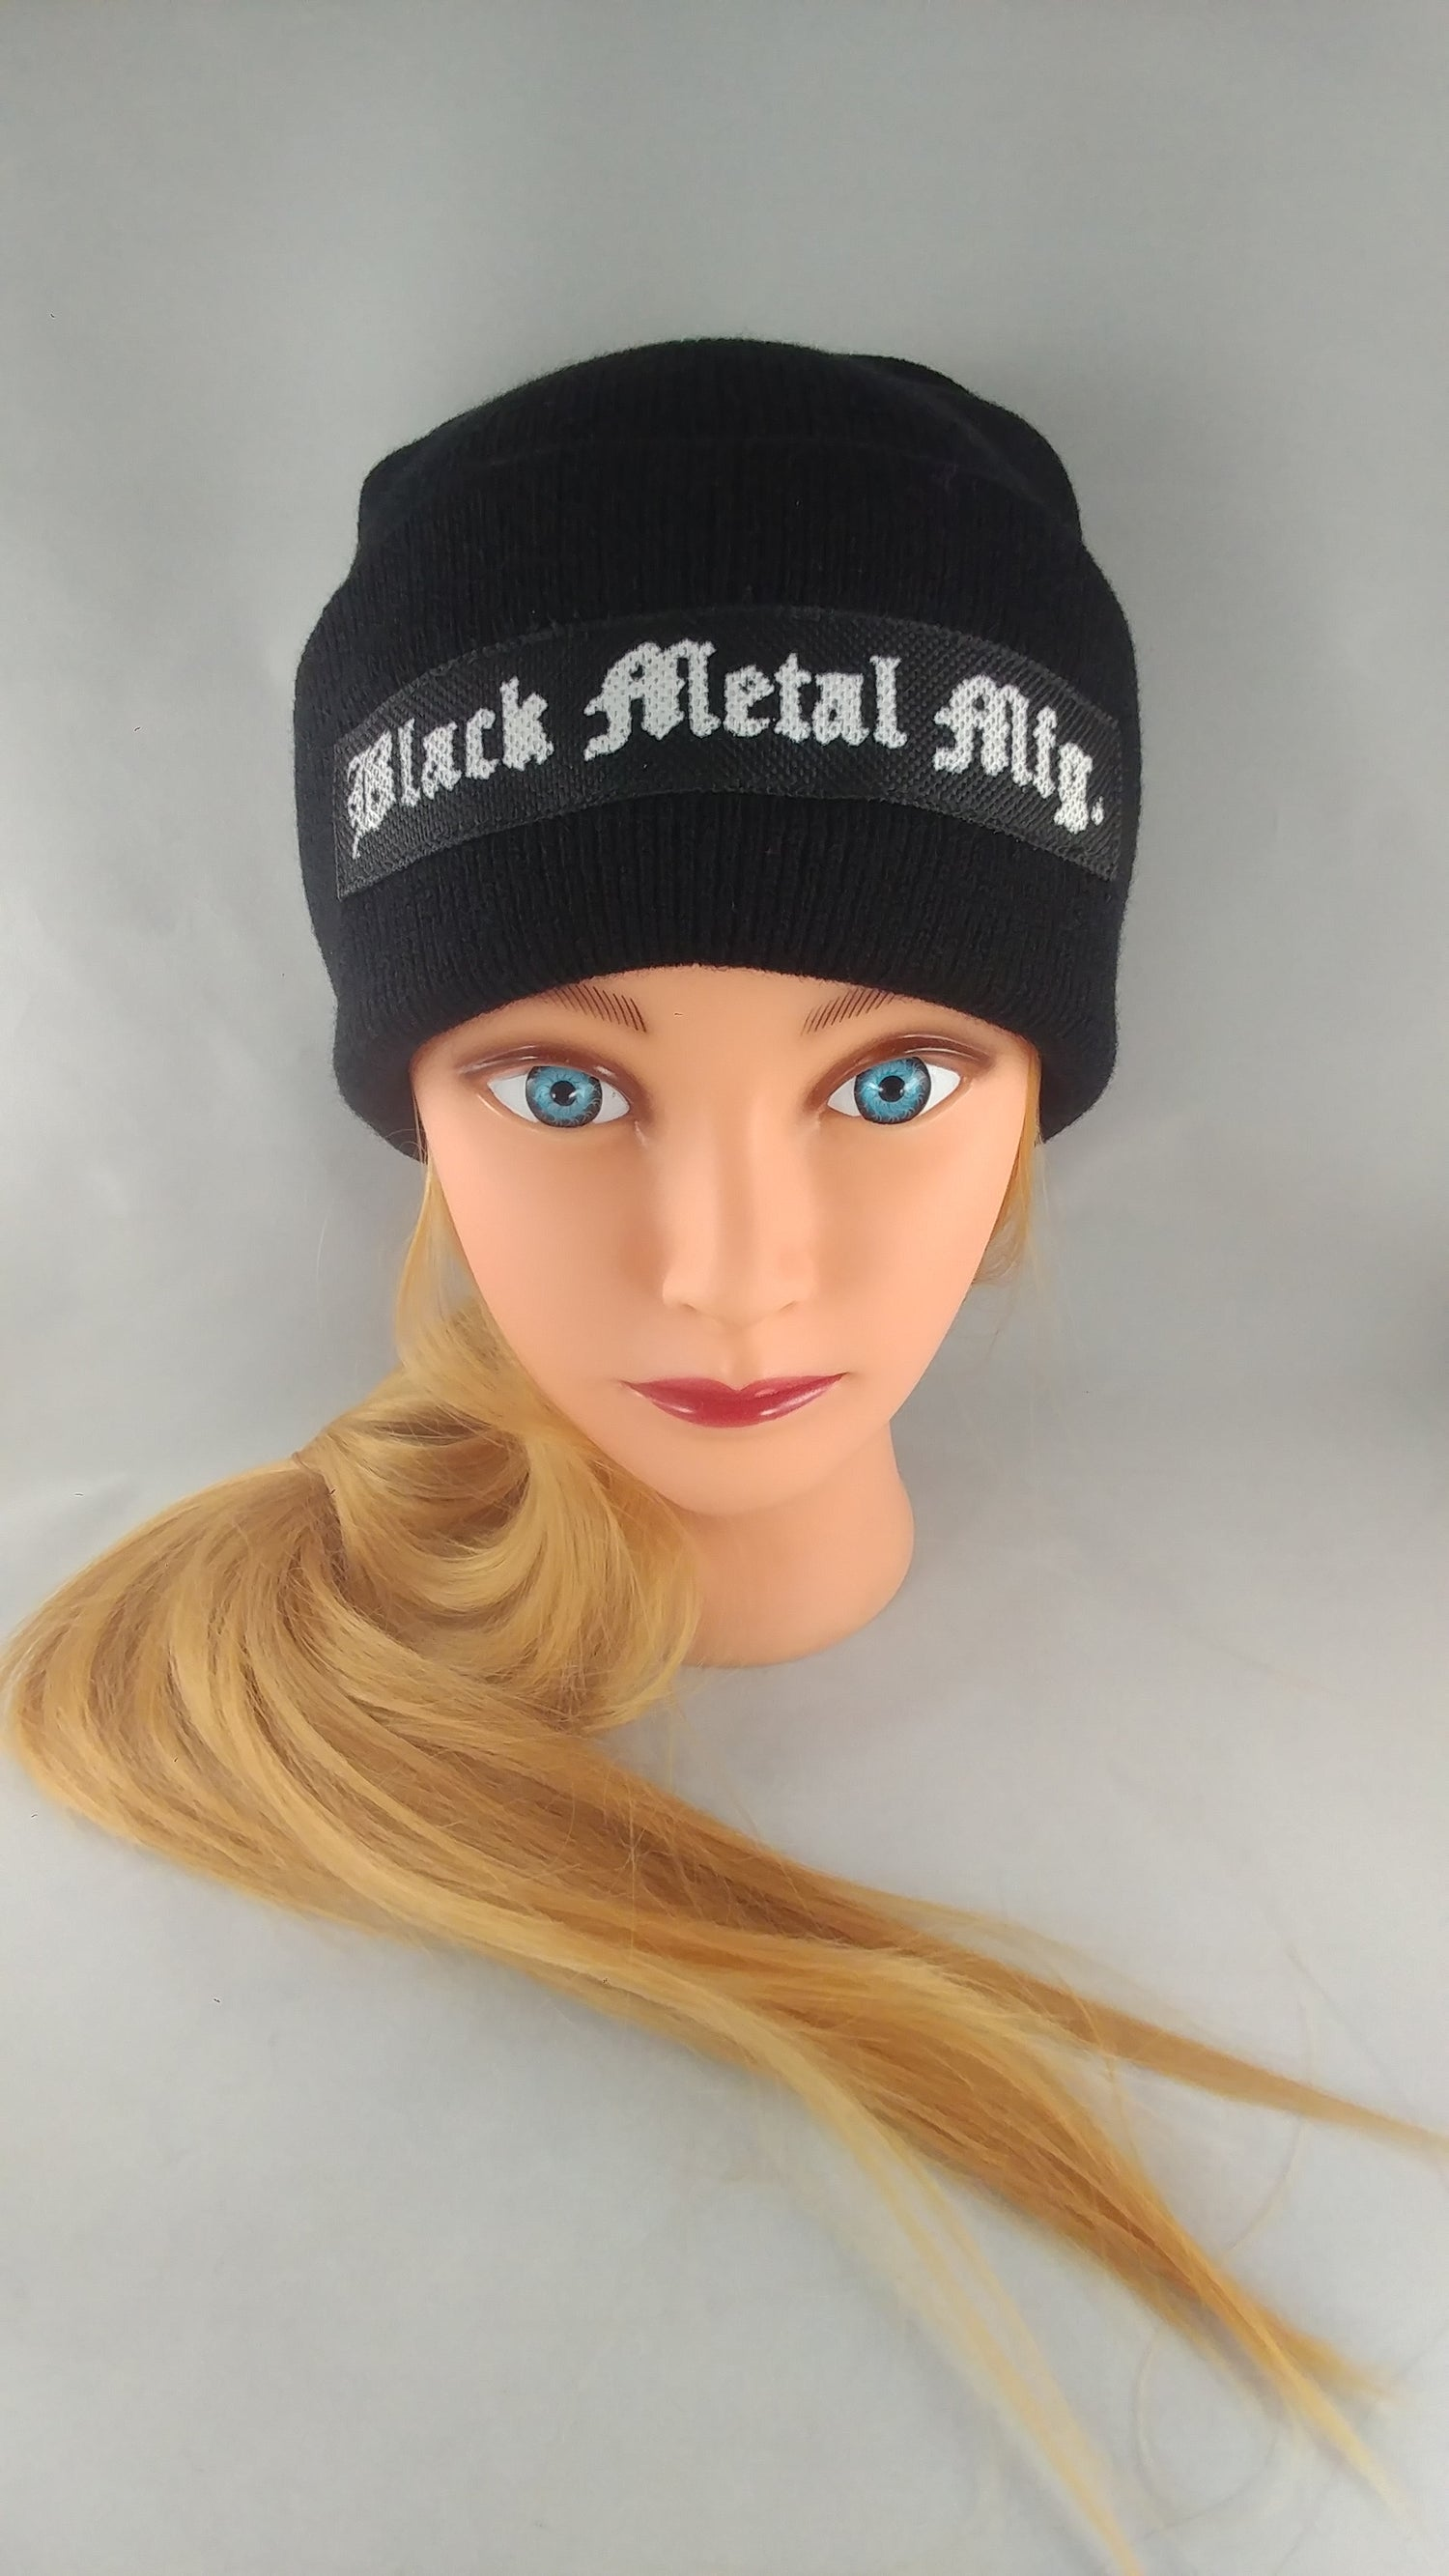 Image of Black Metal Mfg. Patch Beanies